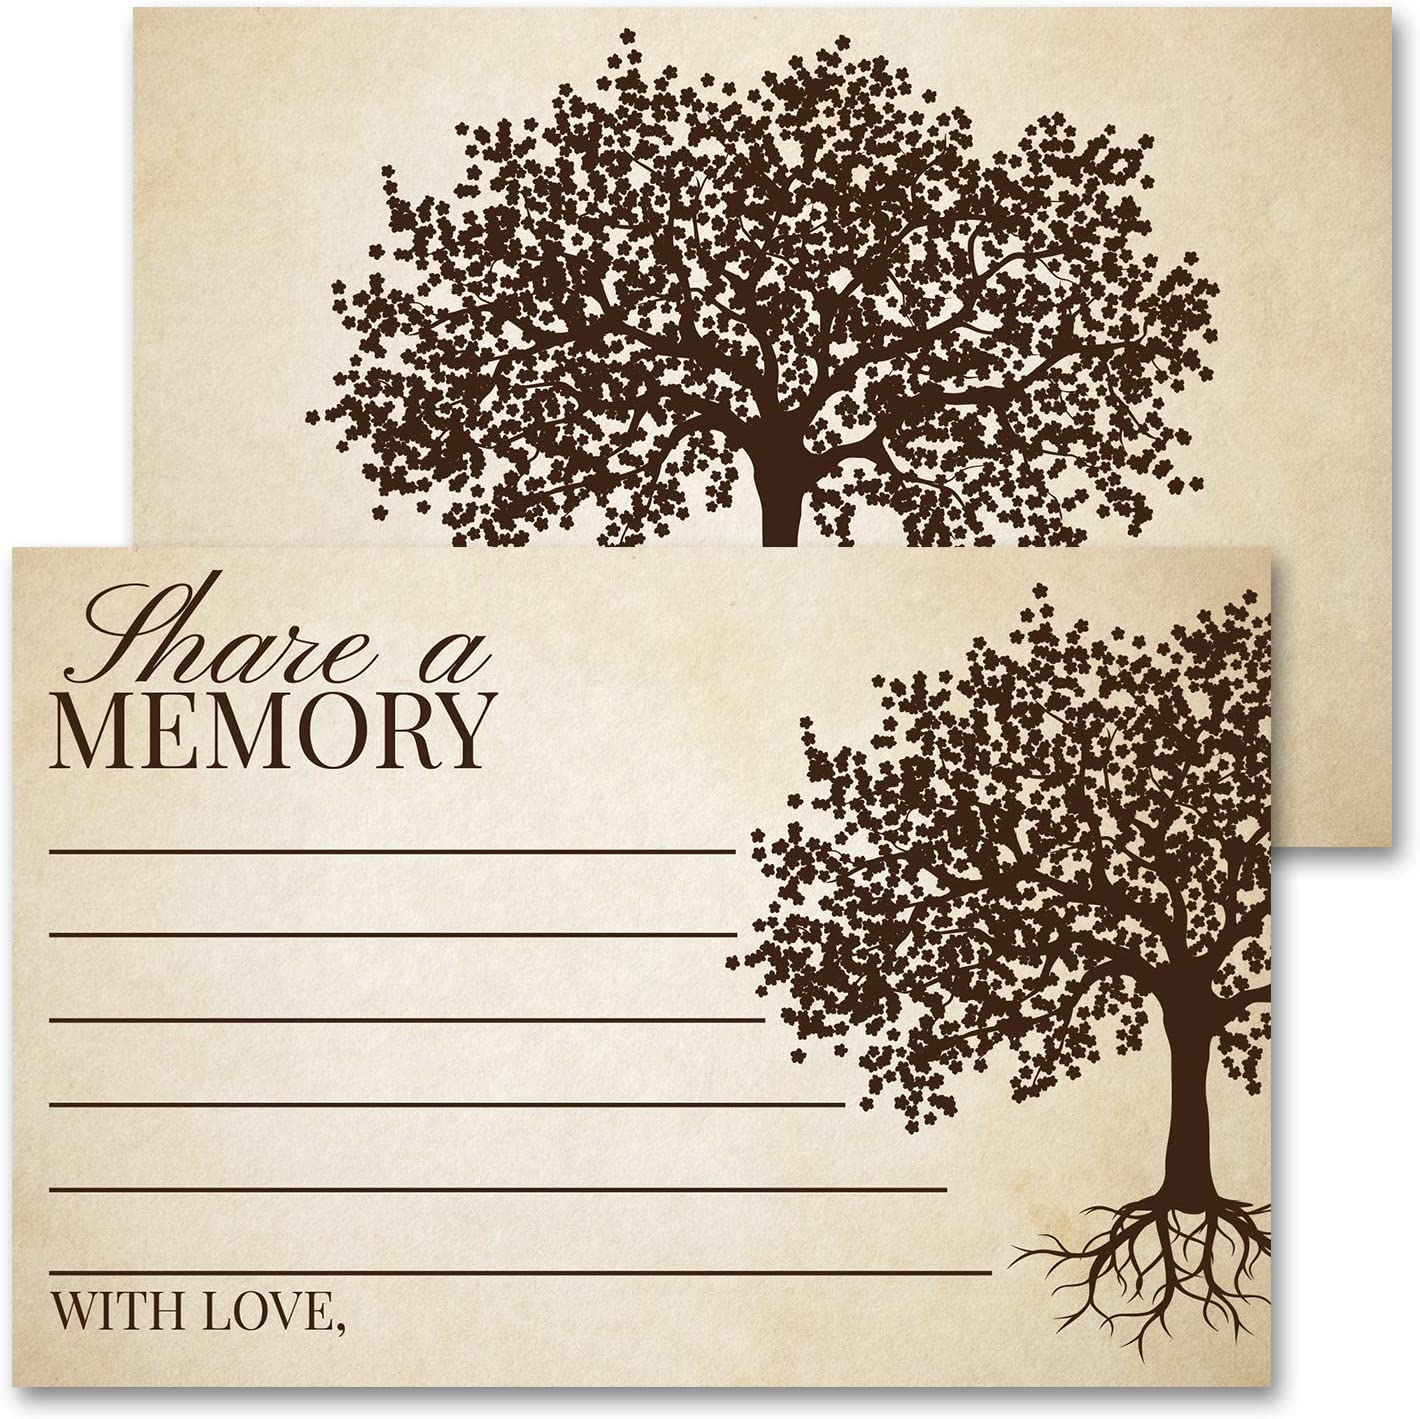 """Deluxe Share A Memory Card Celebration of Life, Funeral Memorial Rememberance Service, Condolence Book, Retirement, Tree of Life Guestbook Alternative Pack of 40 4 x 6"""" Cards"""